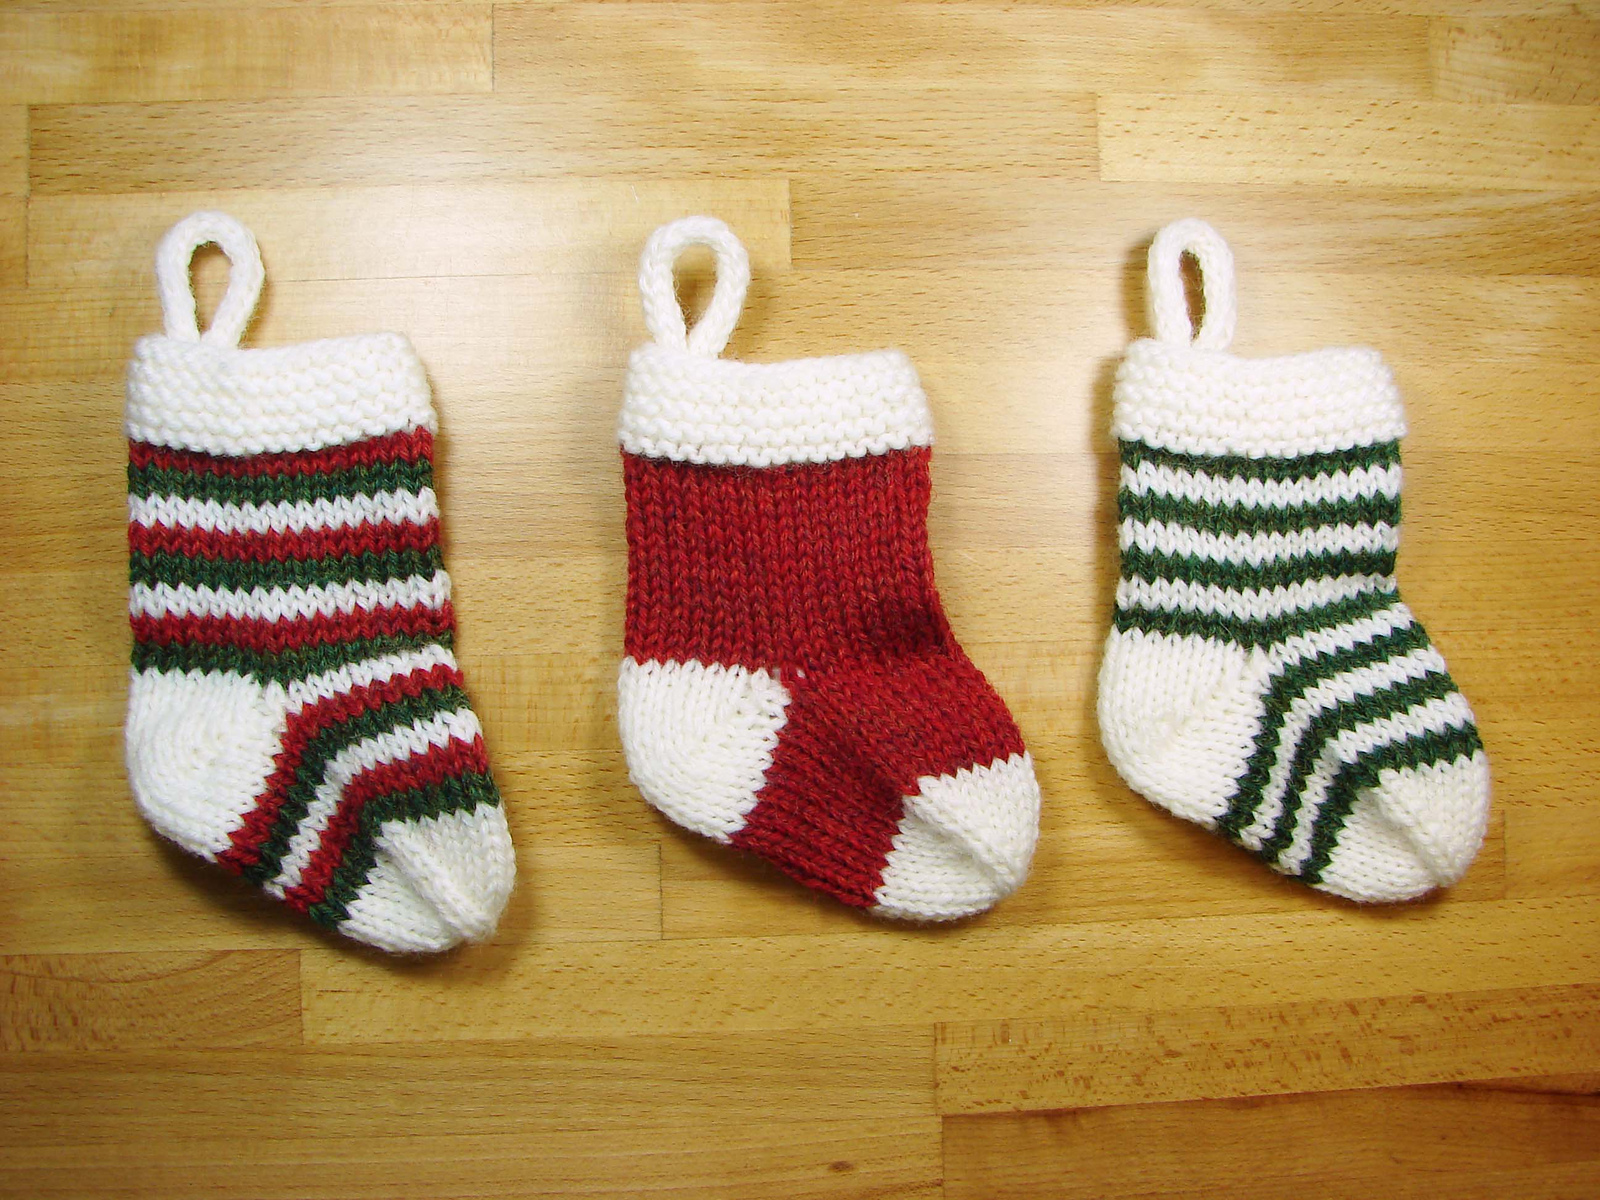 Knit this Mini stocking pattern in solids or stripes for a quick knitting project.